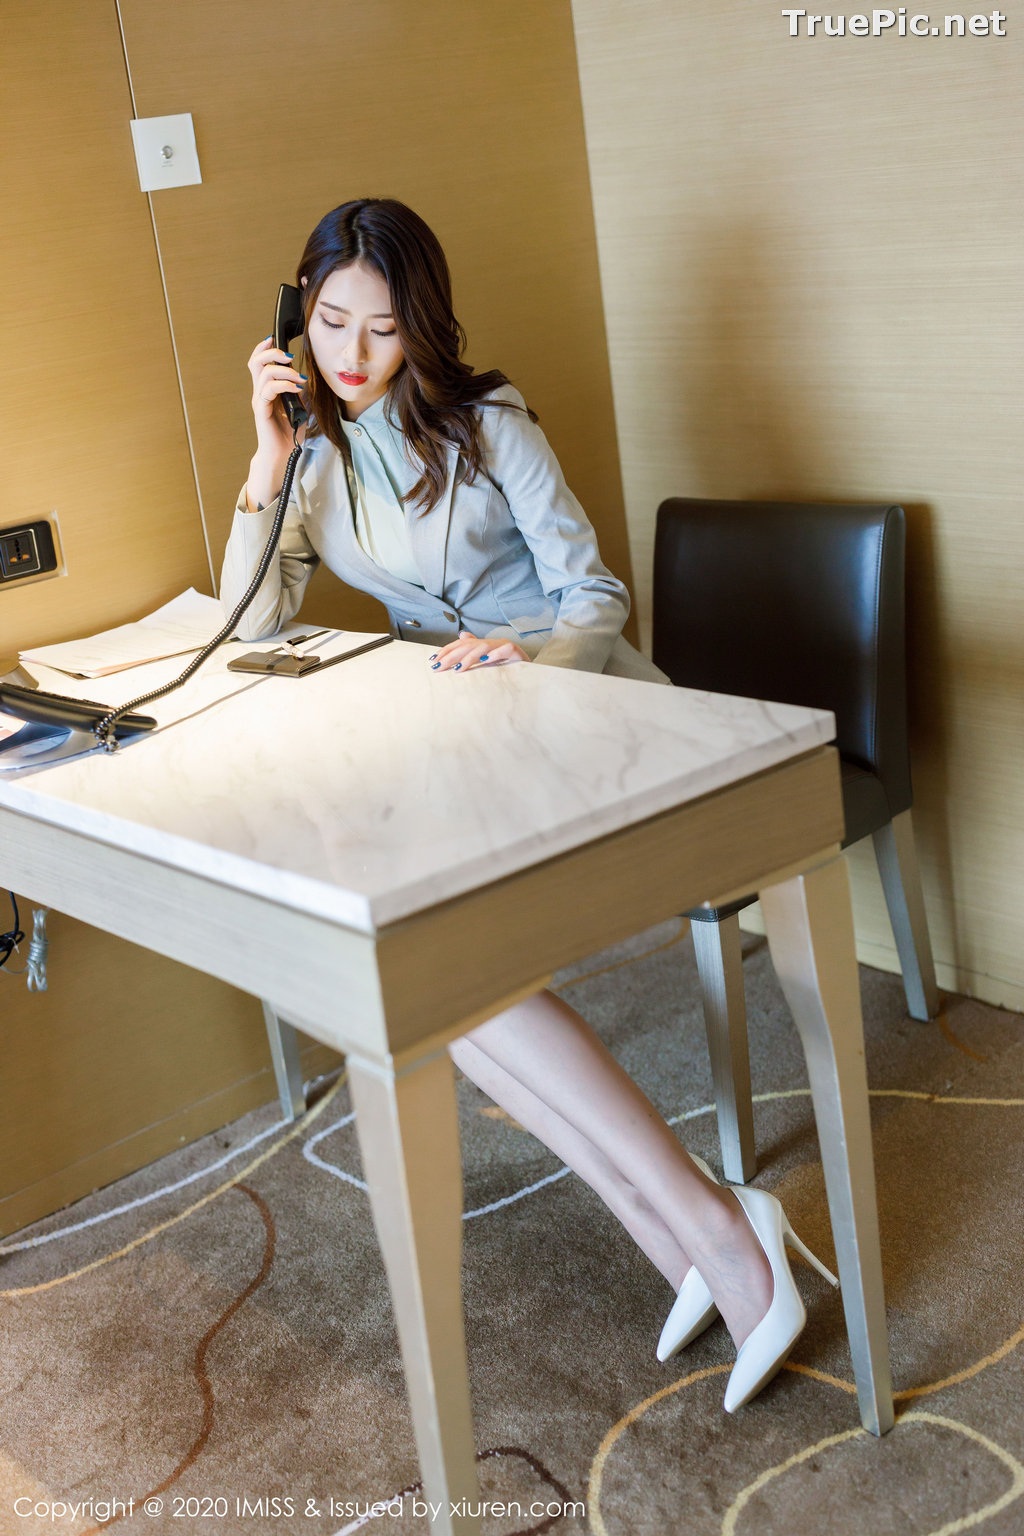 Image IMISS Vol.466 - Chinese Model - Fang Zi Xuan (方子萱) - Sexy Office Girl - TruePic.net - Picture-2